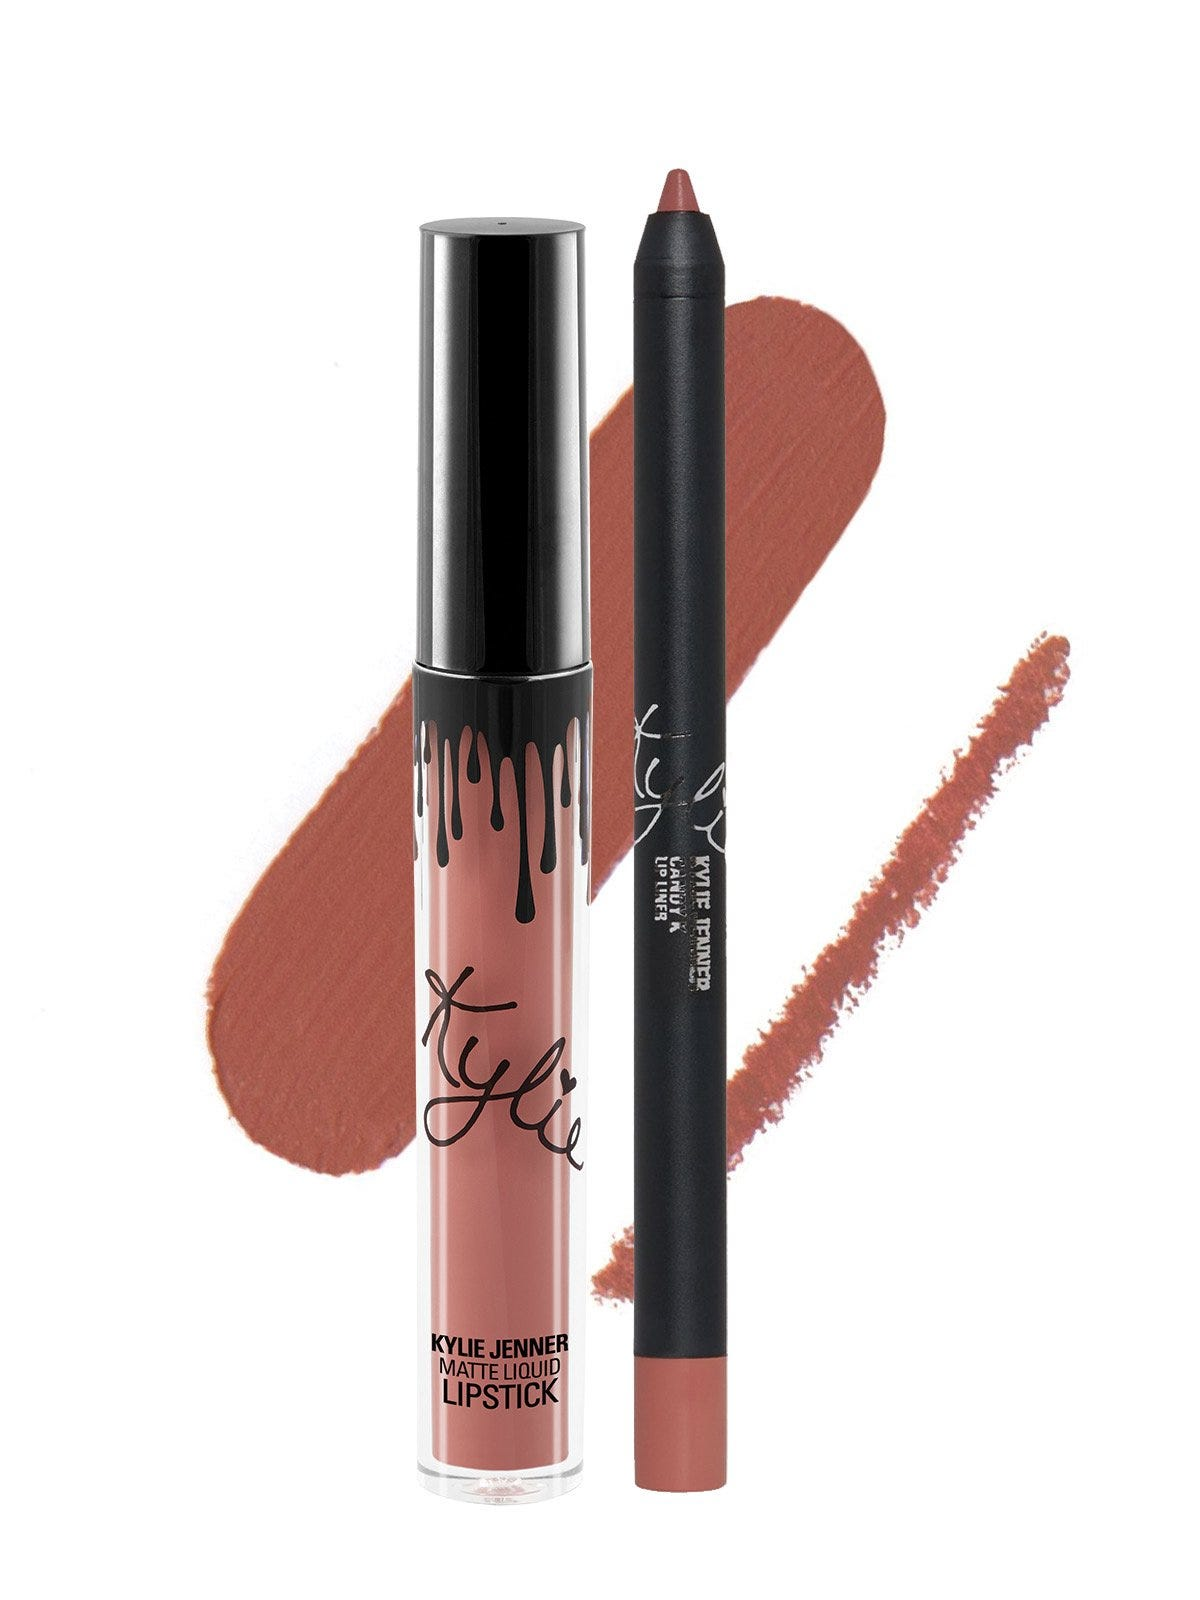 Kylie Jenner Lip Kit Colors Matching Skin Tones